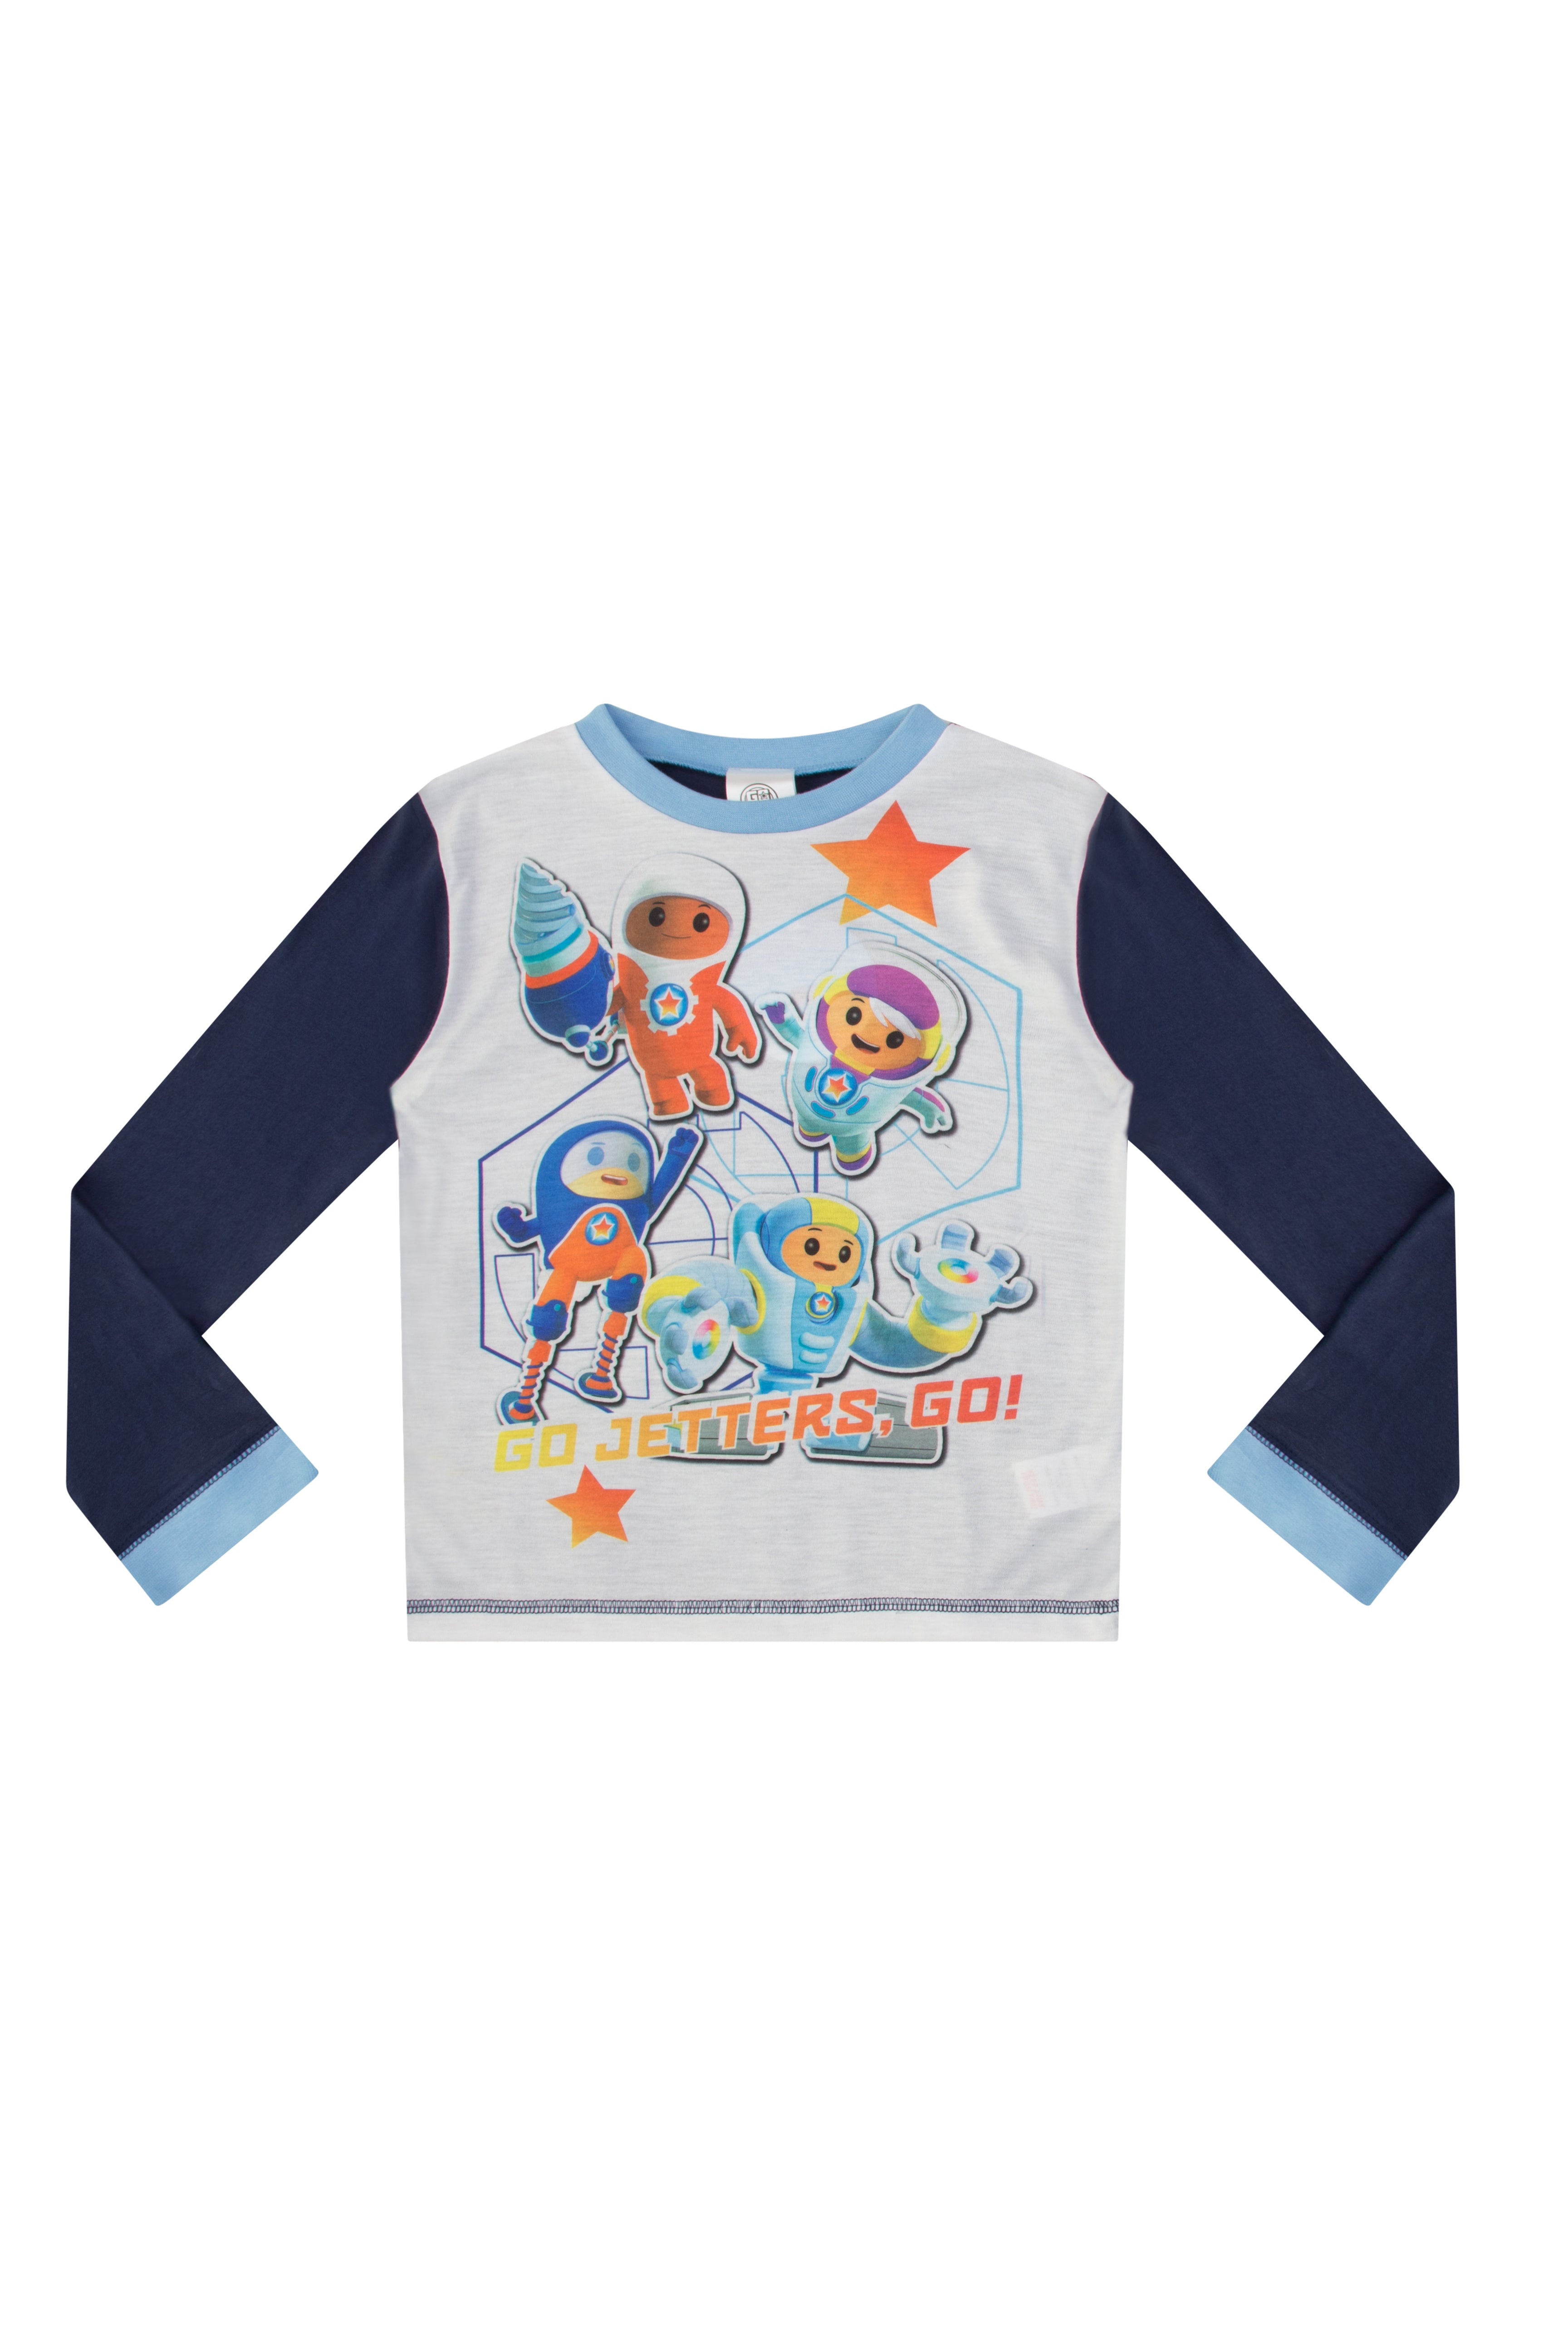 Go Jetters Official Gift Baby Toddler Boys Pajamas